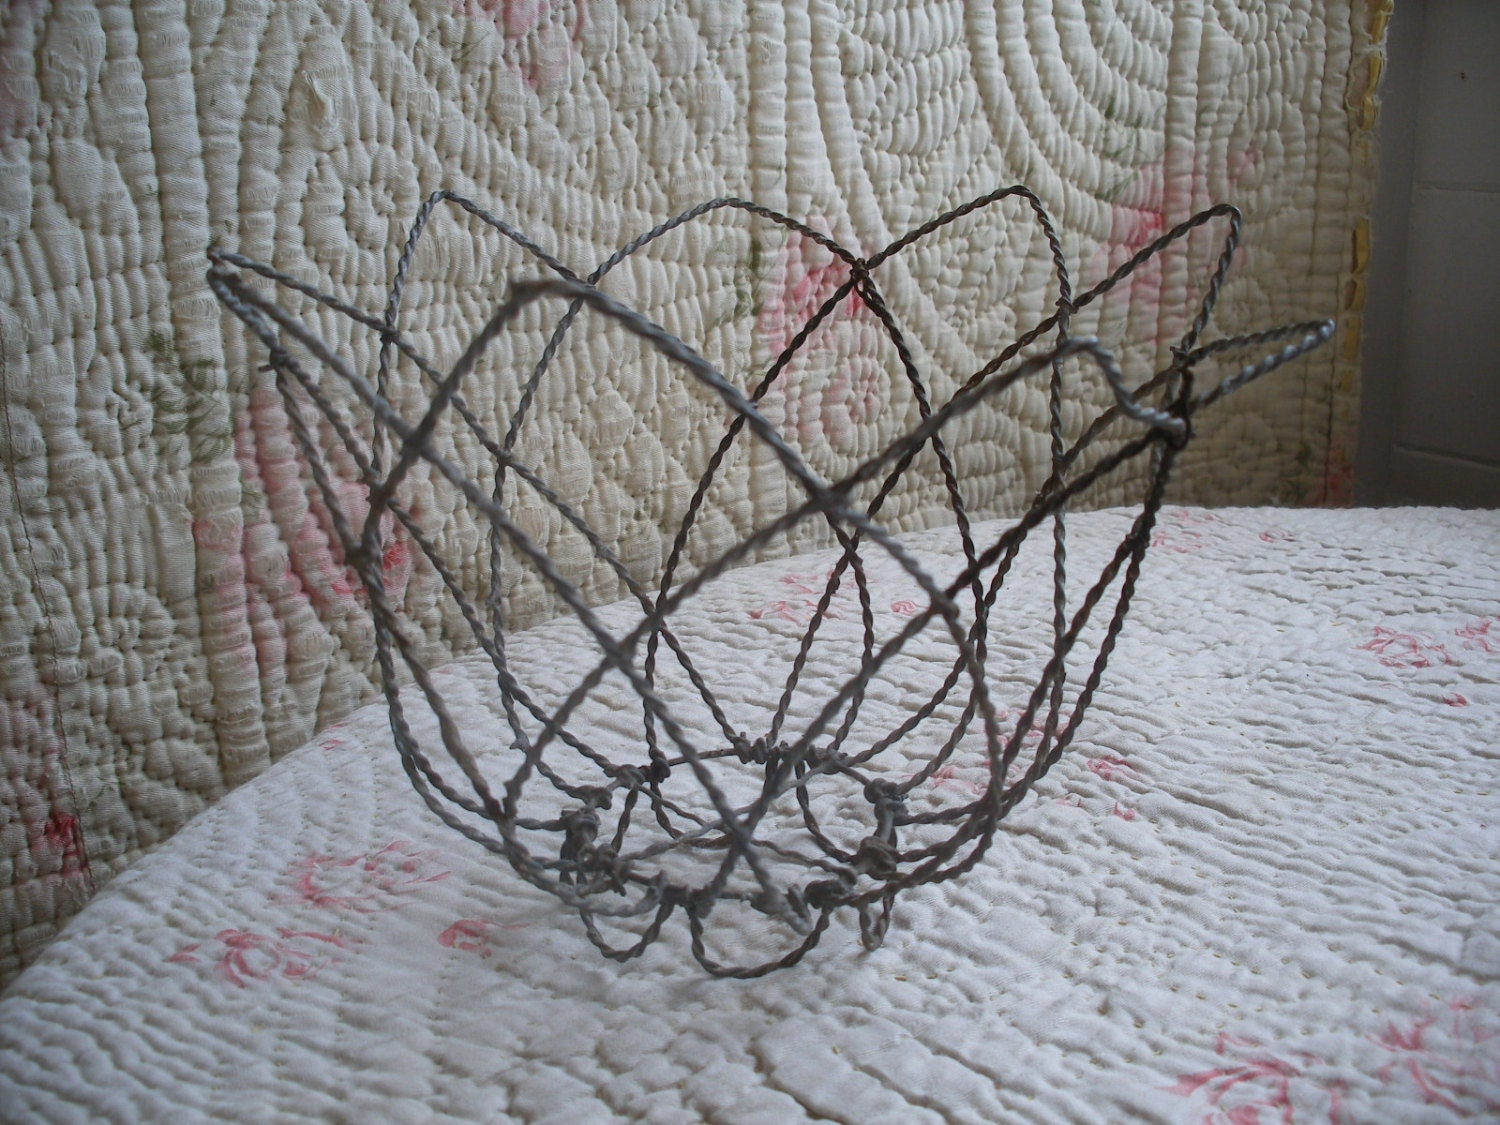 Flower wire baskets : Vintage wire basket flower shape hanging plant by